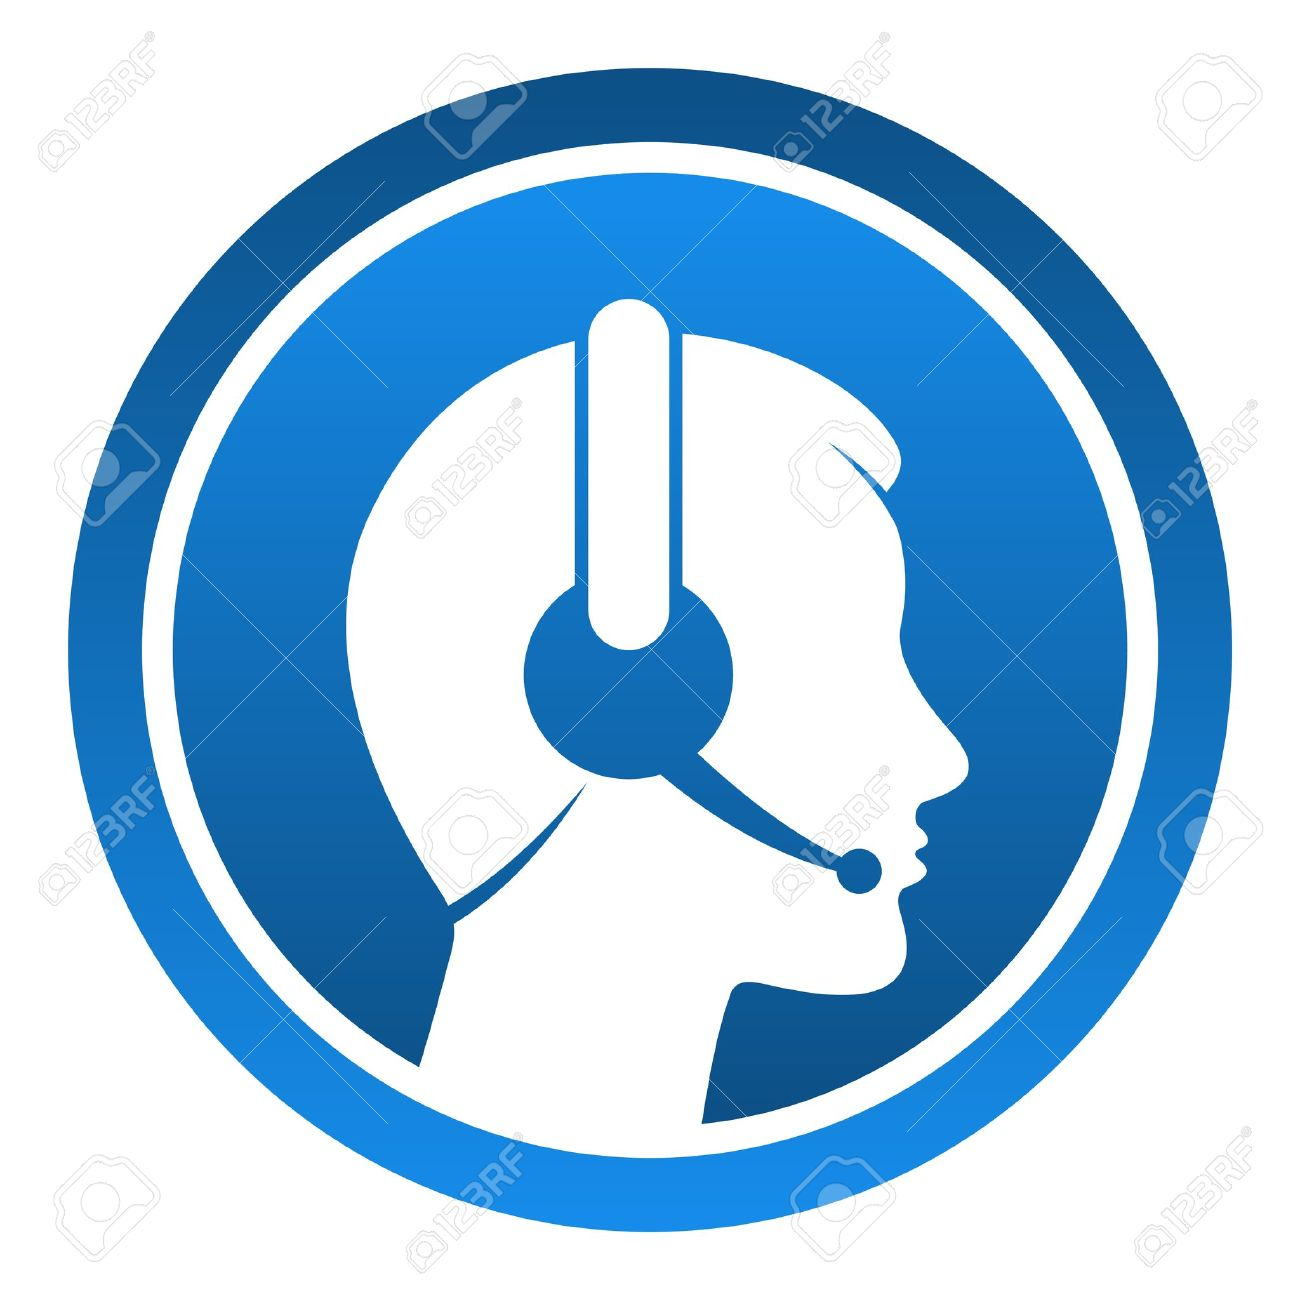 Headset Contact Icon Stock Vector - 14720149